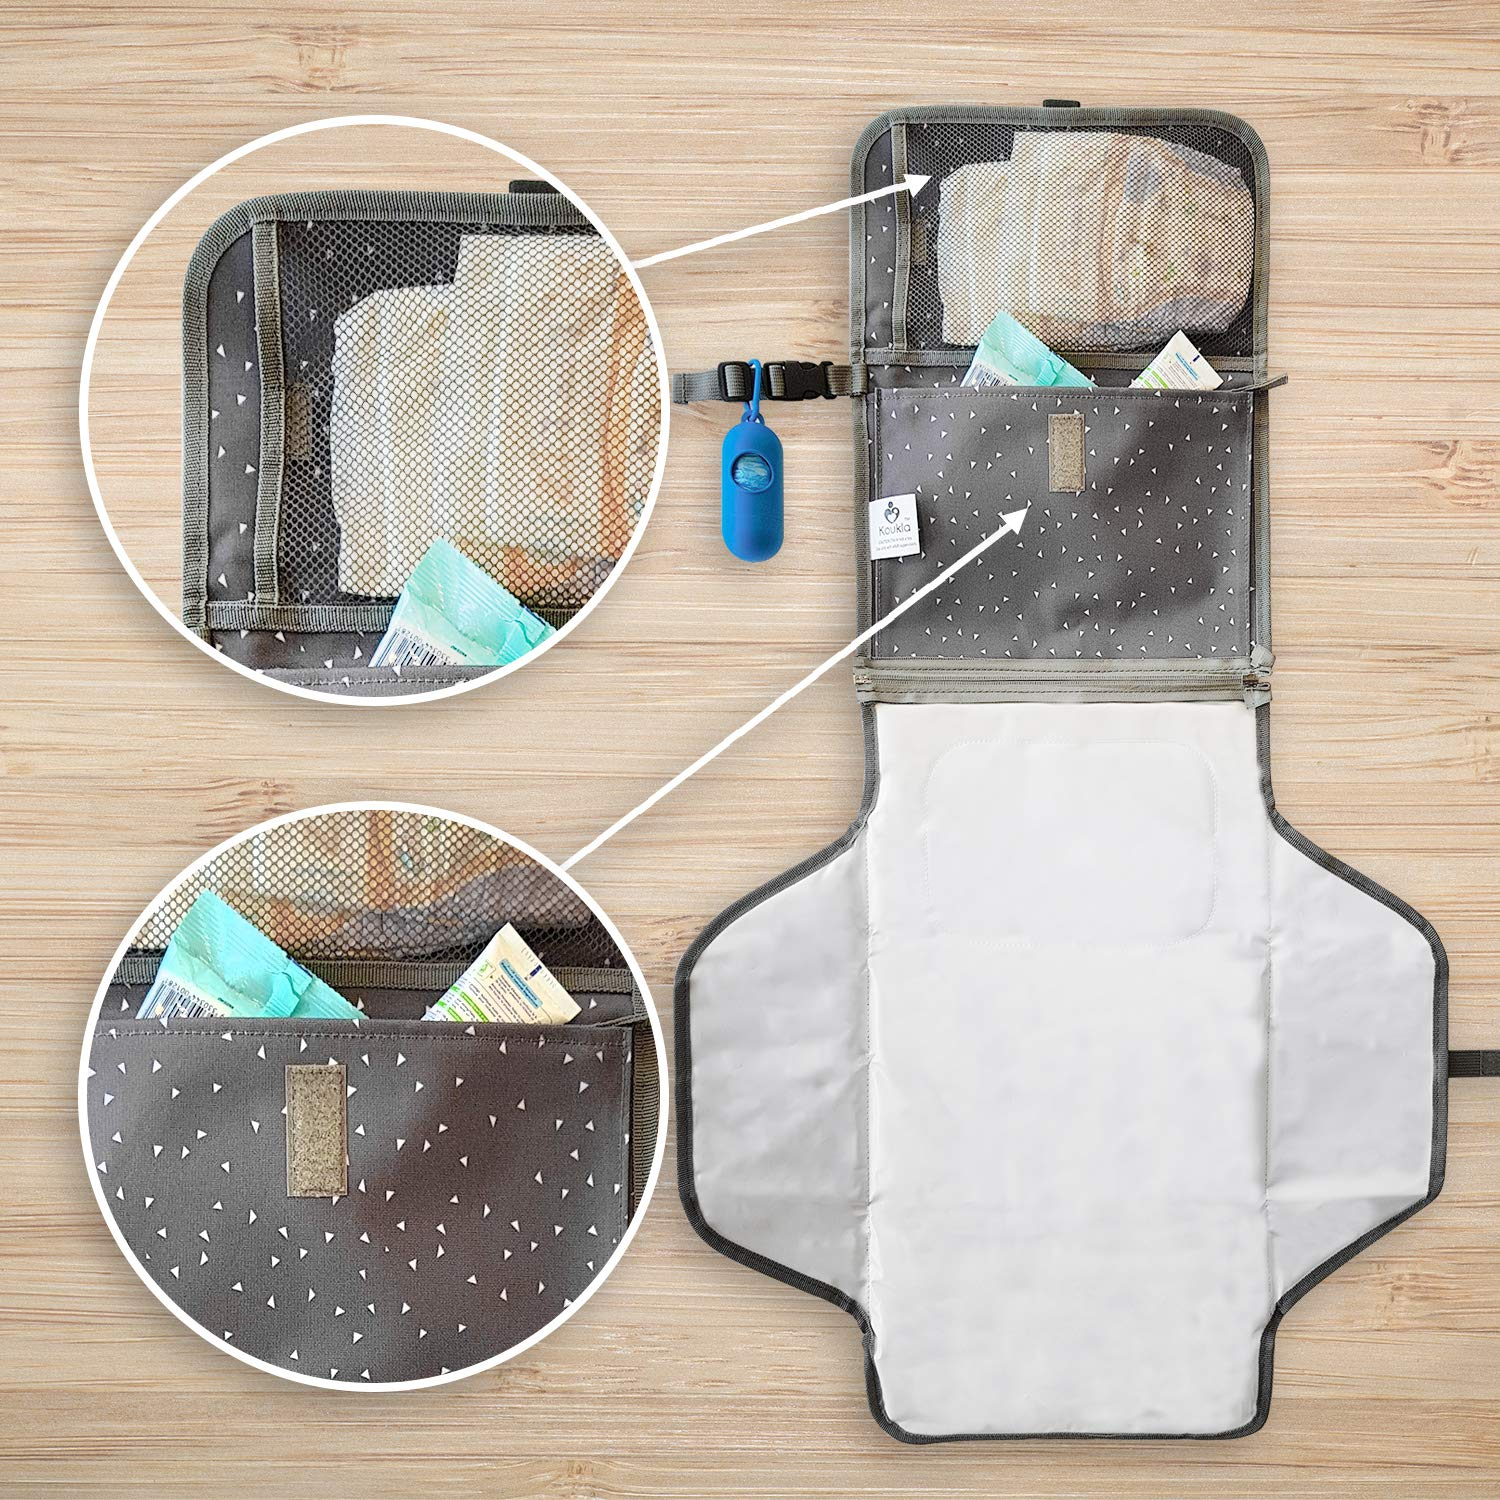 Portable Diaper Changing Pad Clutch Baby Changing Station with Disposable Dirty Diaper Bags and Dispenser Extra Head Cushion Great for Travel Lightweight Pockets for Diapers Wipes Cream Easy to Clean by Koukla (Image #7)